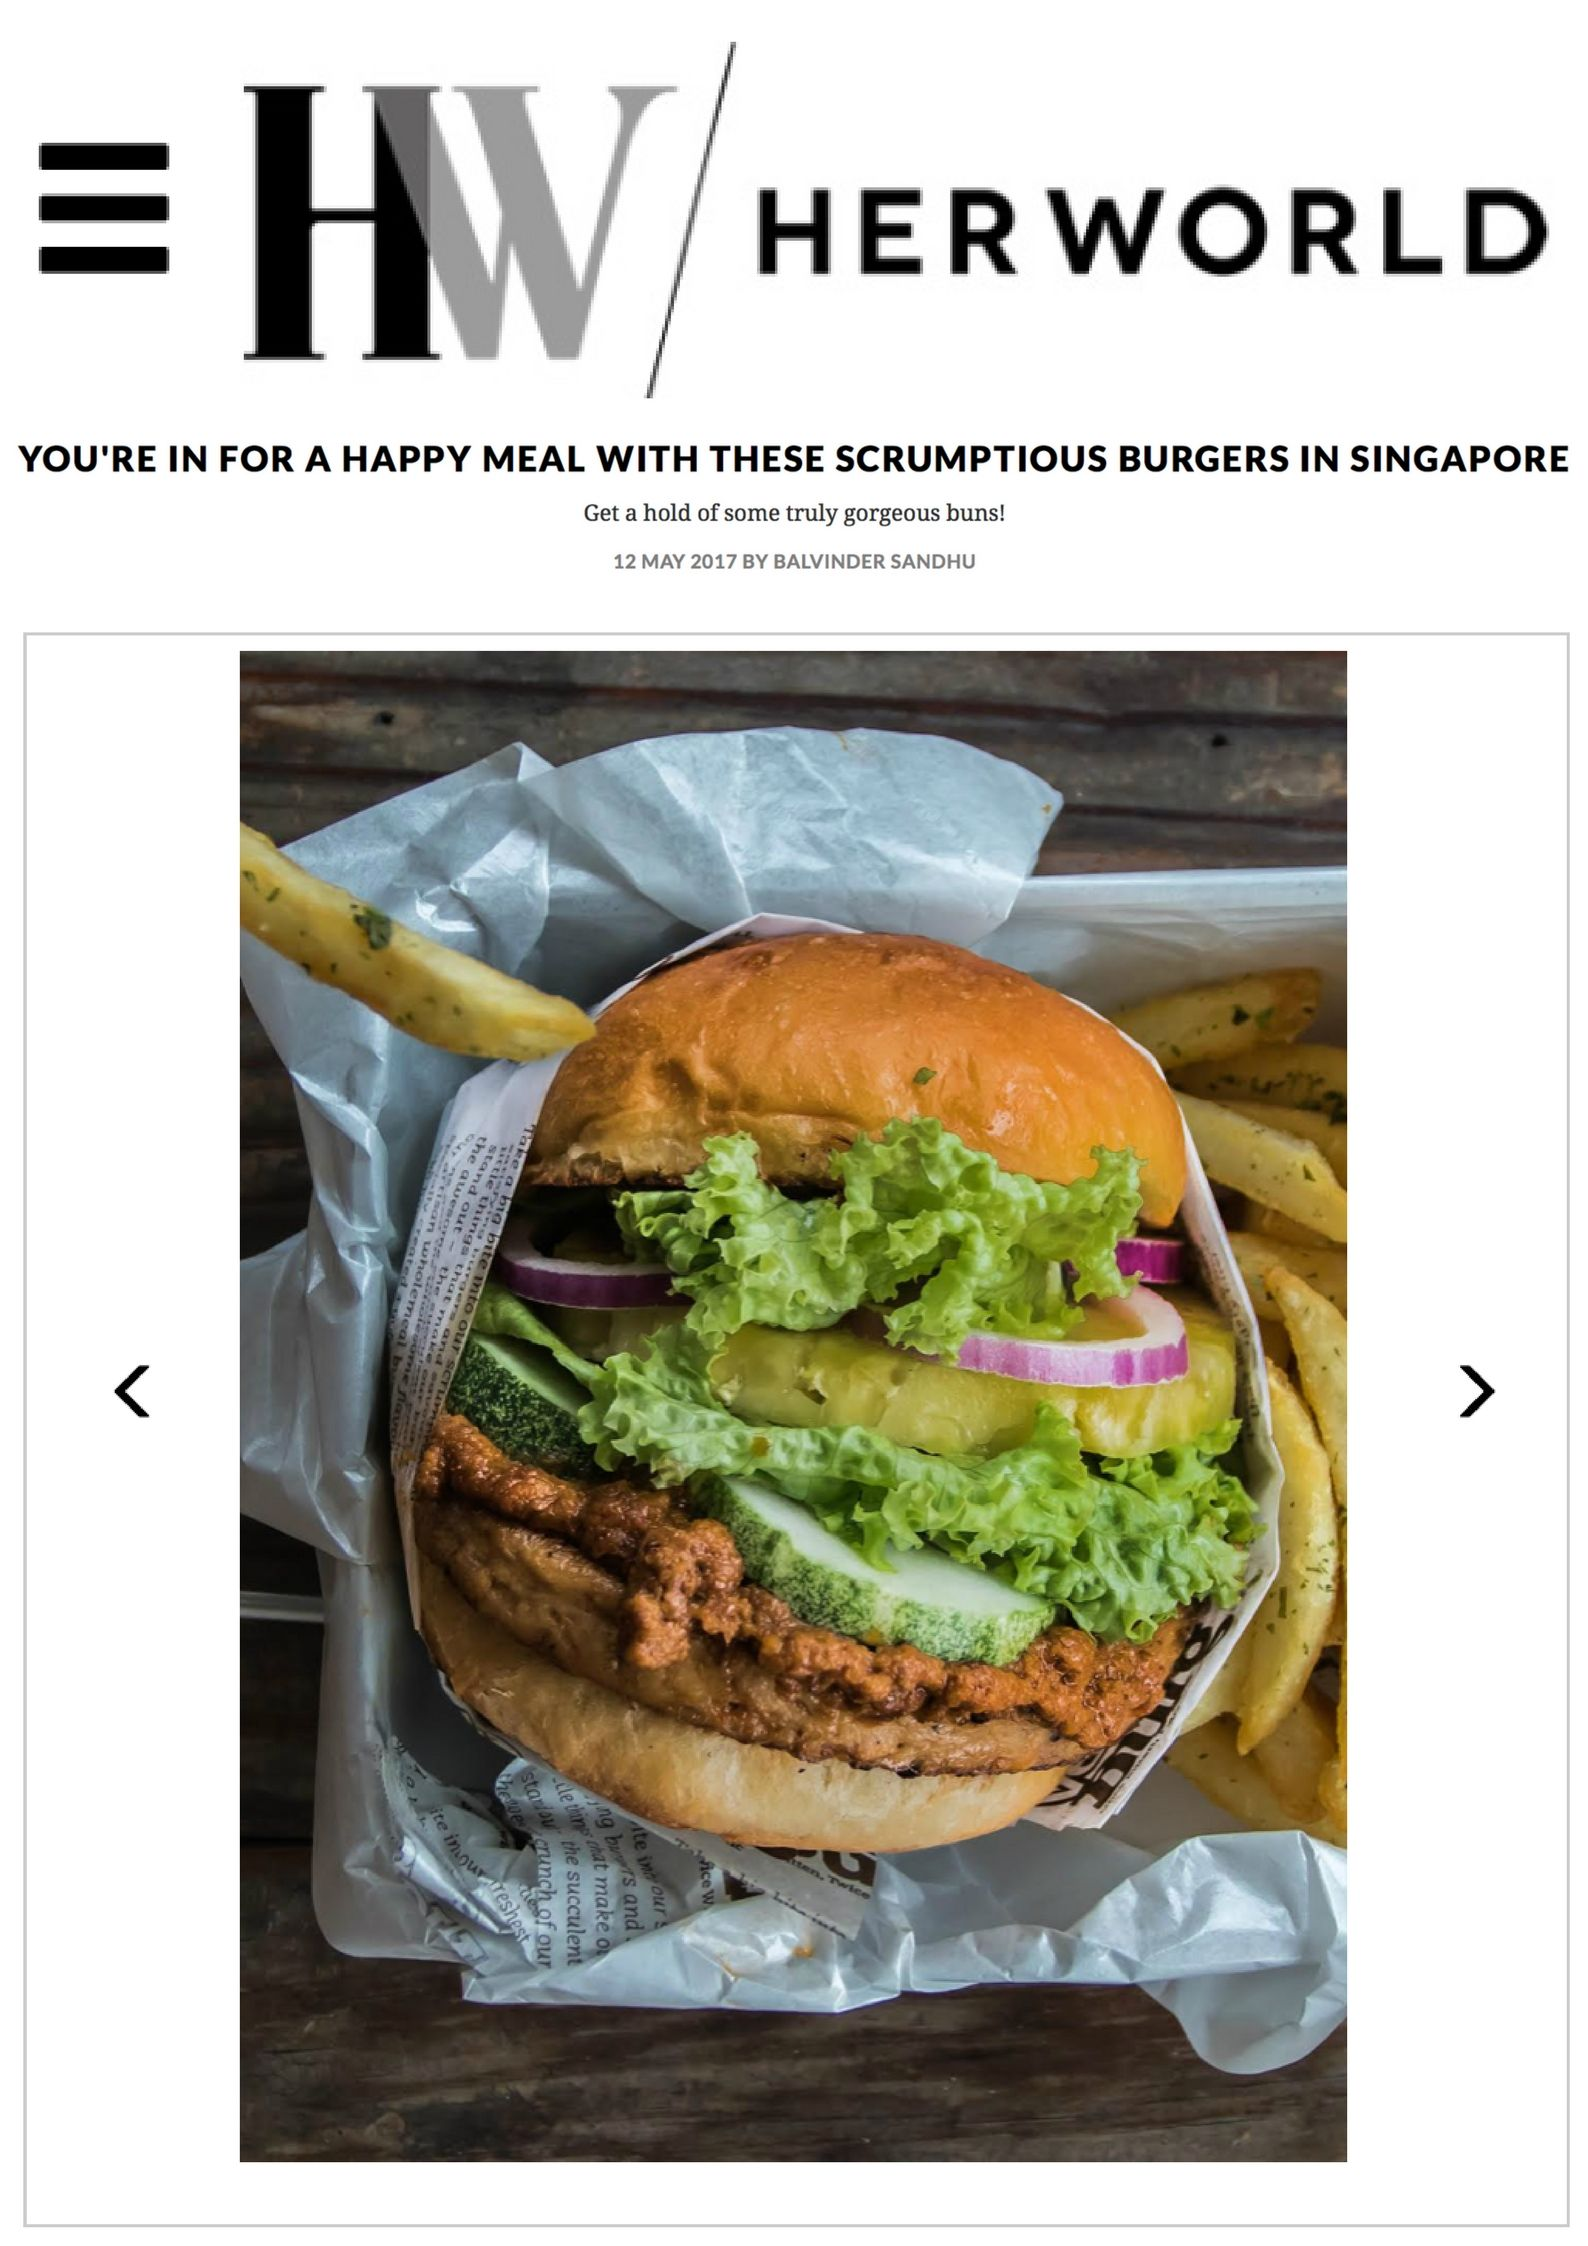 Her World Plus_ YOU'RE IN FOR A HAPPY MEAL WITH THESE SCRUMPTIOUS BURGERS IN SINGAPORE.jpg